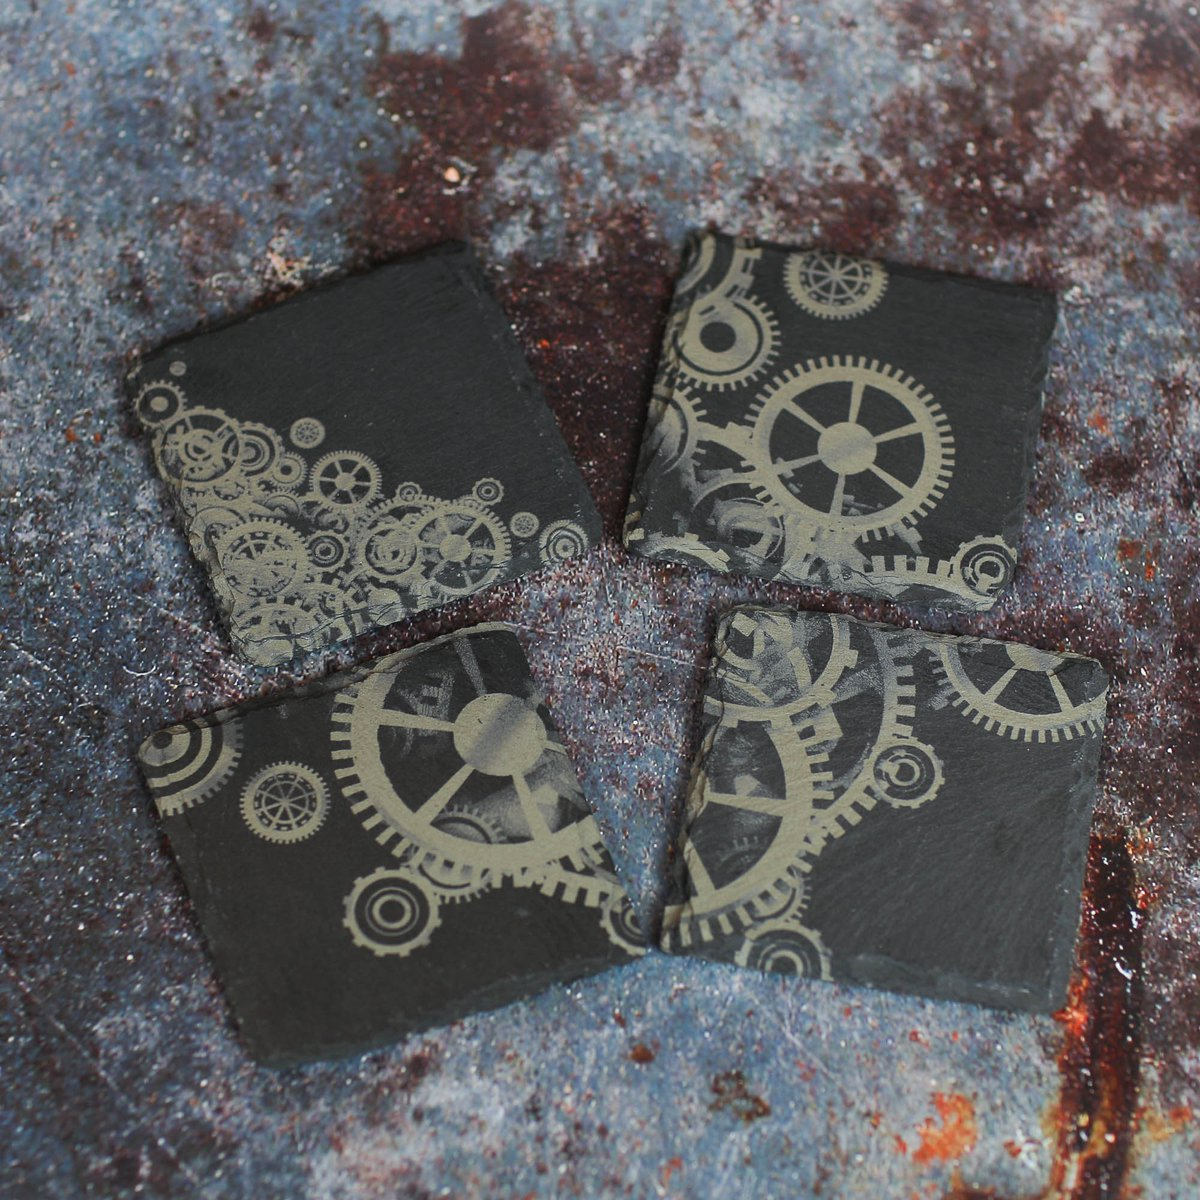 SteamPunk Slate Coasters - the perfect way to make a statement. Only £15 inc delivery to mainland Uk for 4 coasters https://t.co/W3A2VbesYb #black #stone #steampunk #coaster #drinksmat #steampunkcoaster #dragonsknightdesigns